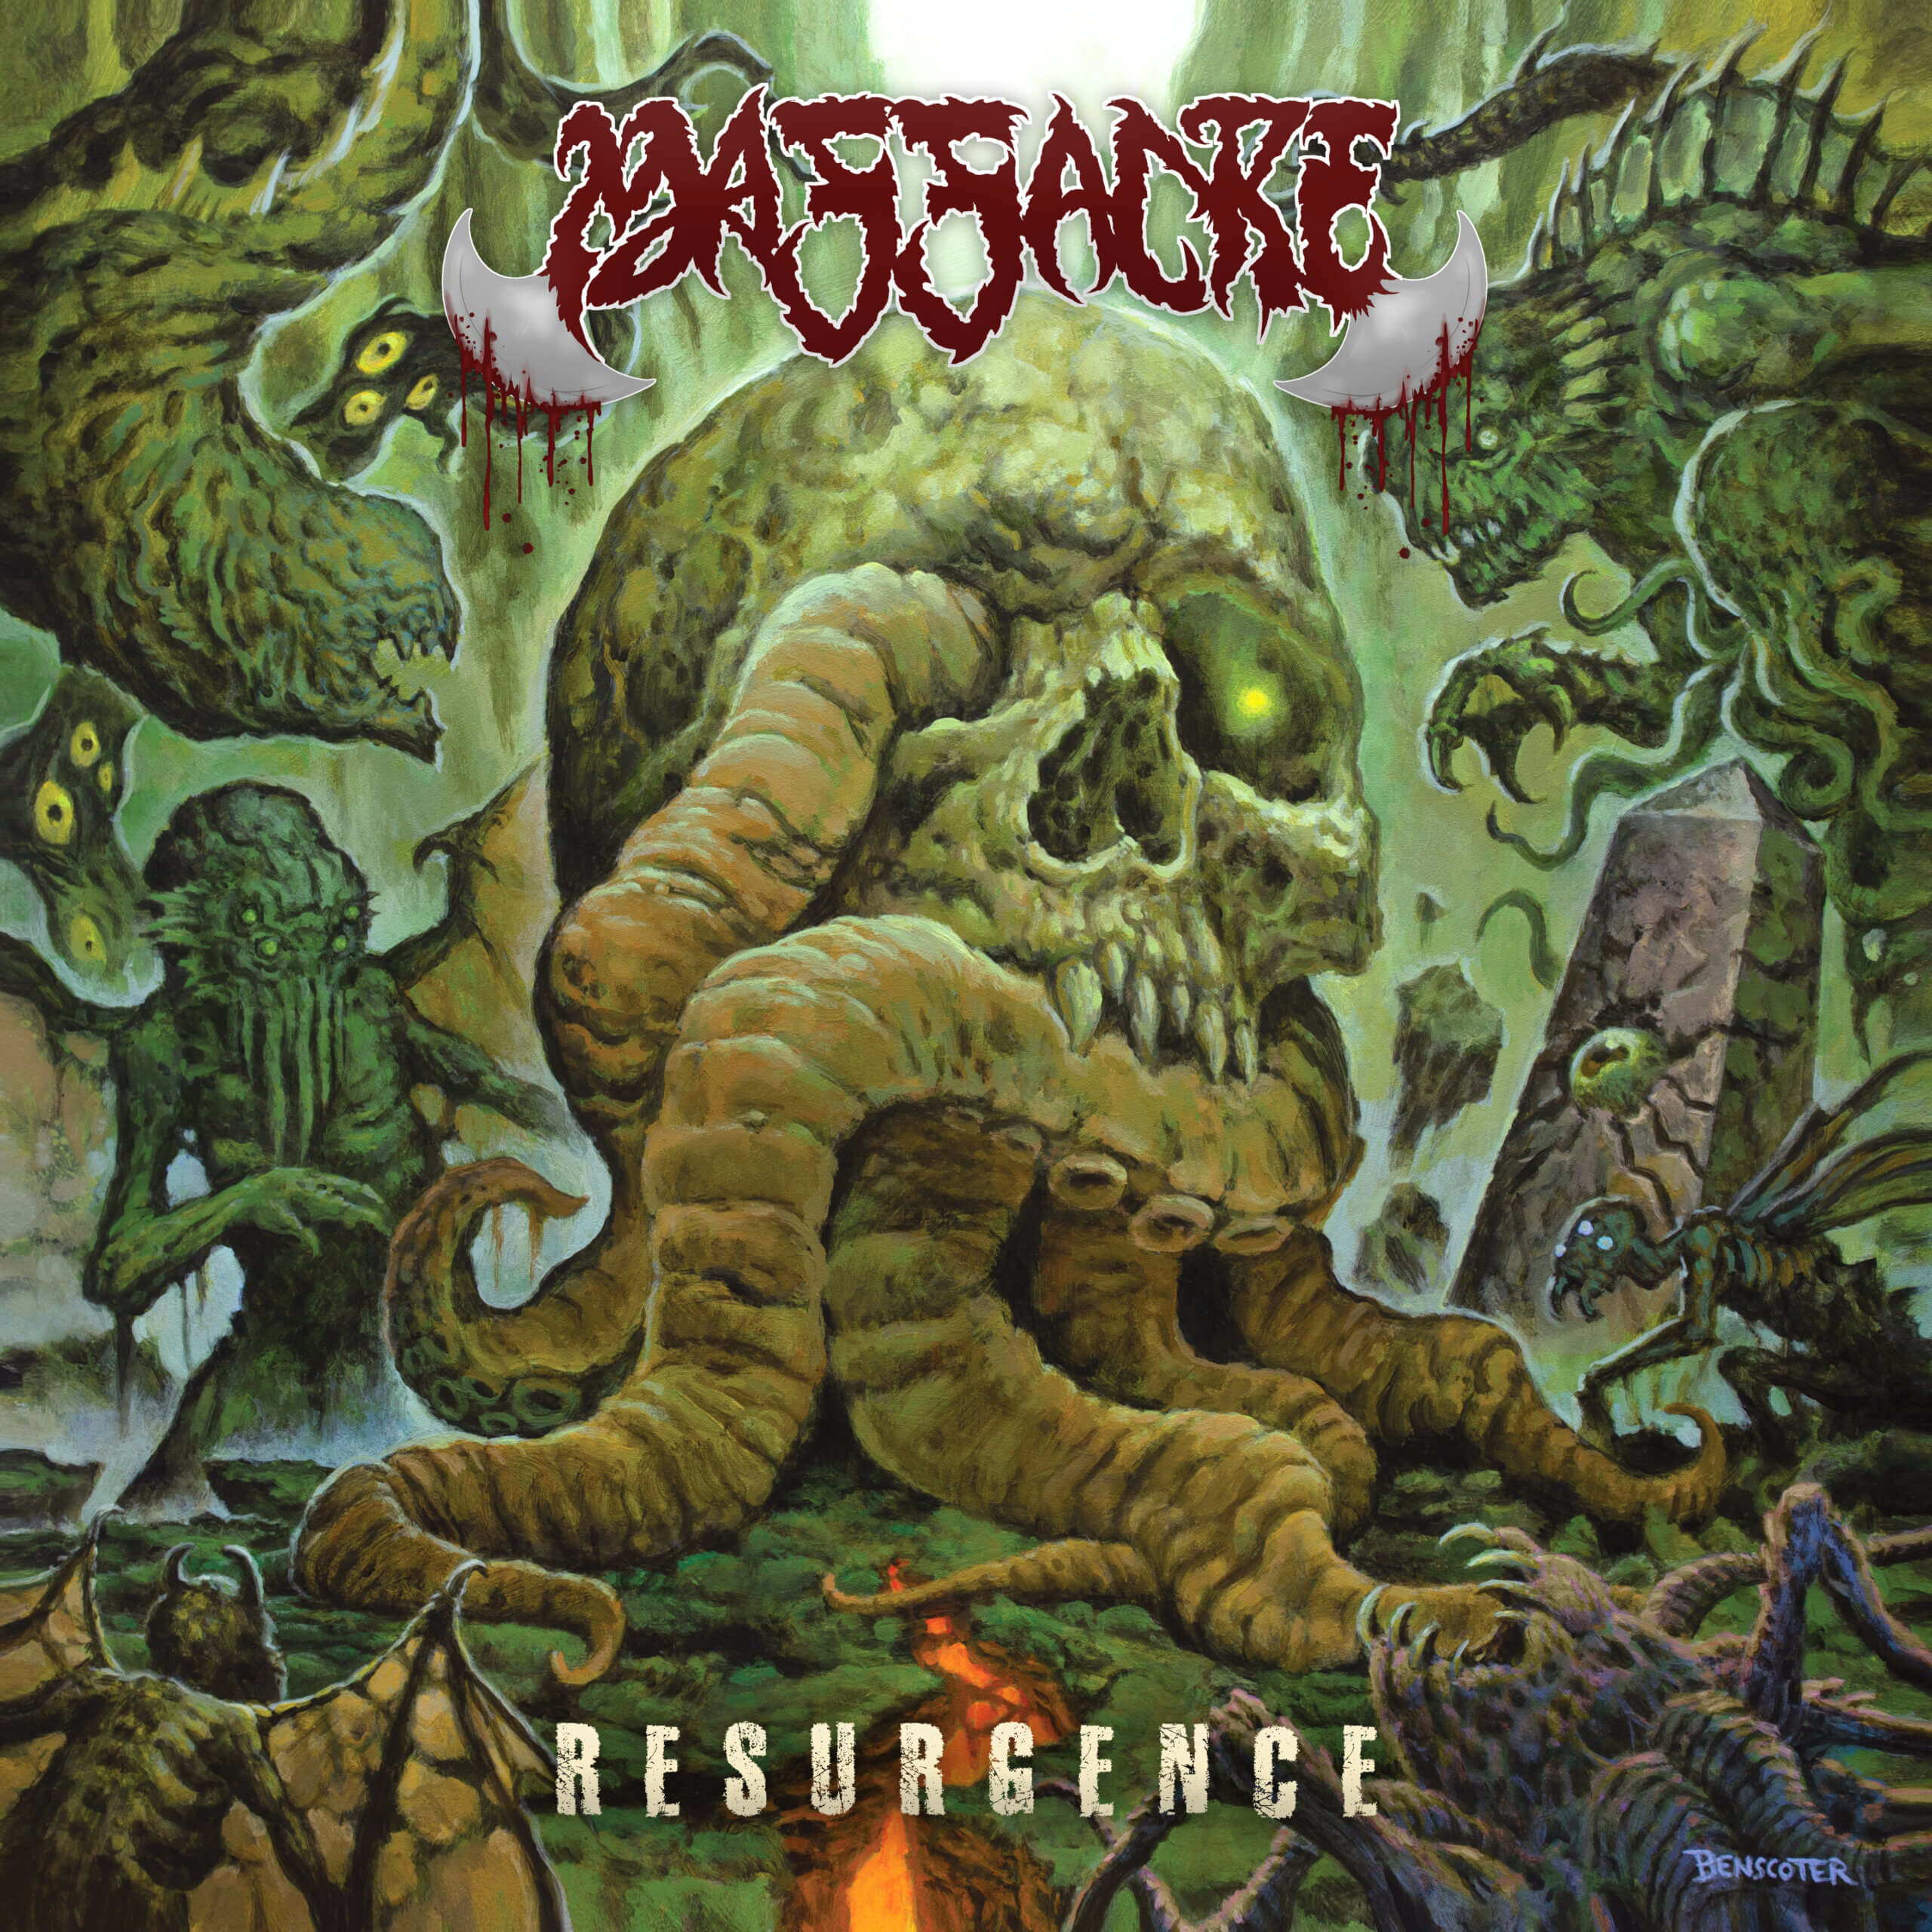 Resurgence by Massacre album review by Jahmeel Russell for Northern Transmissions